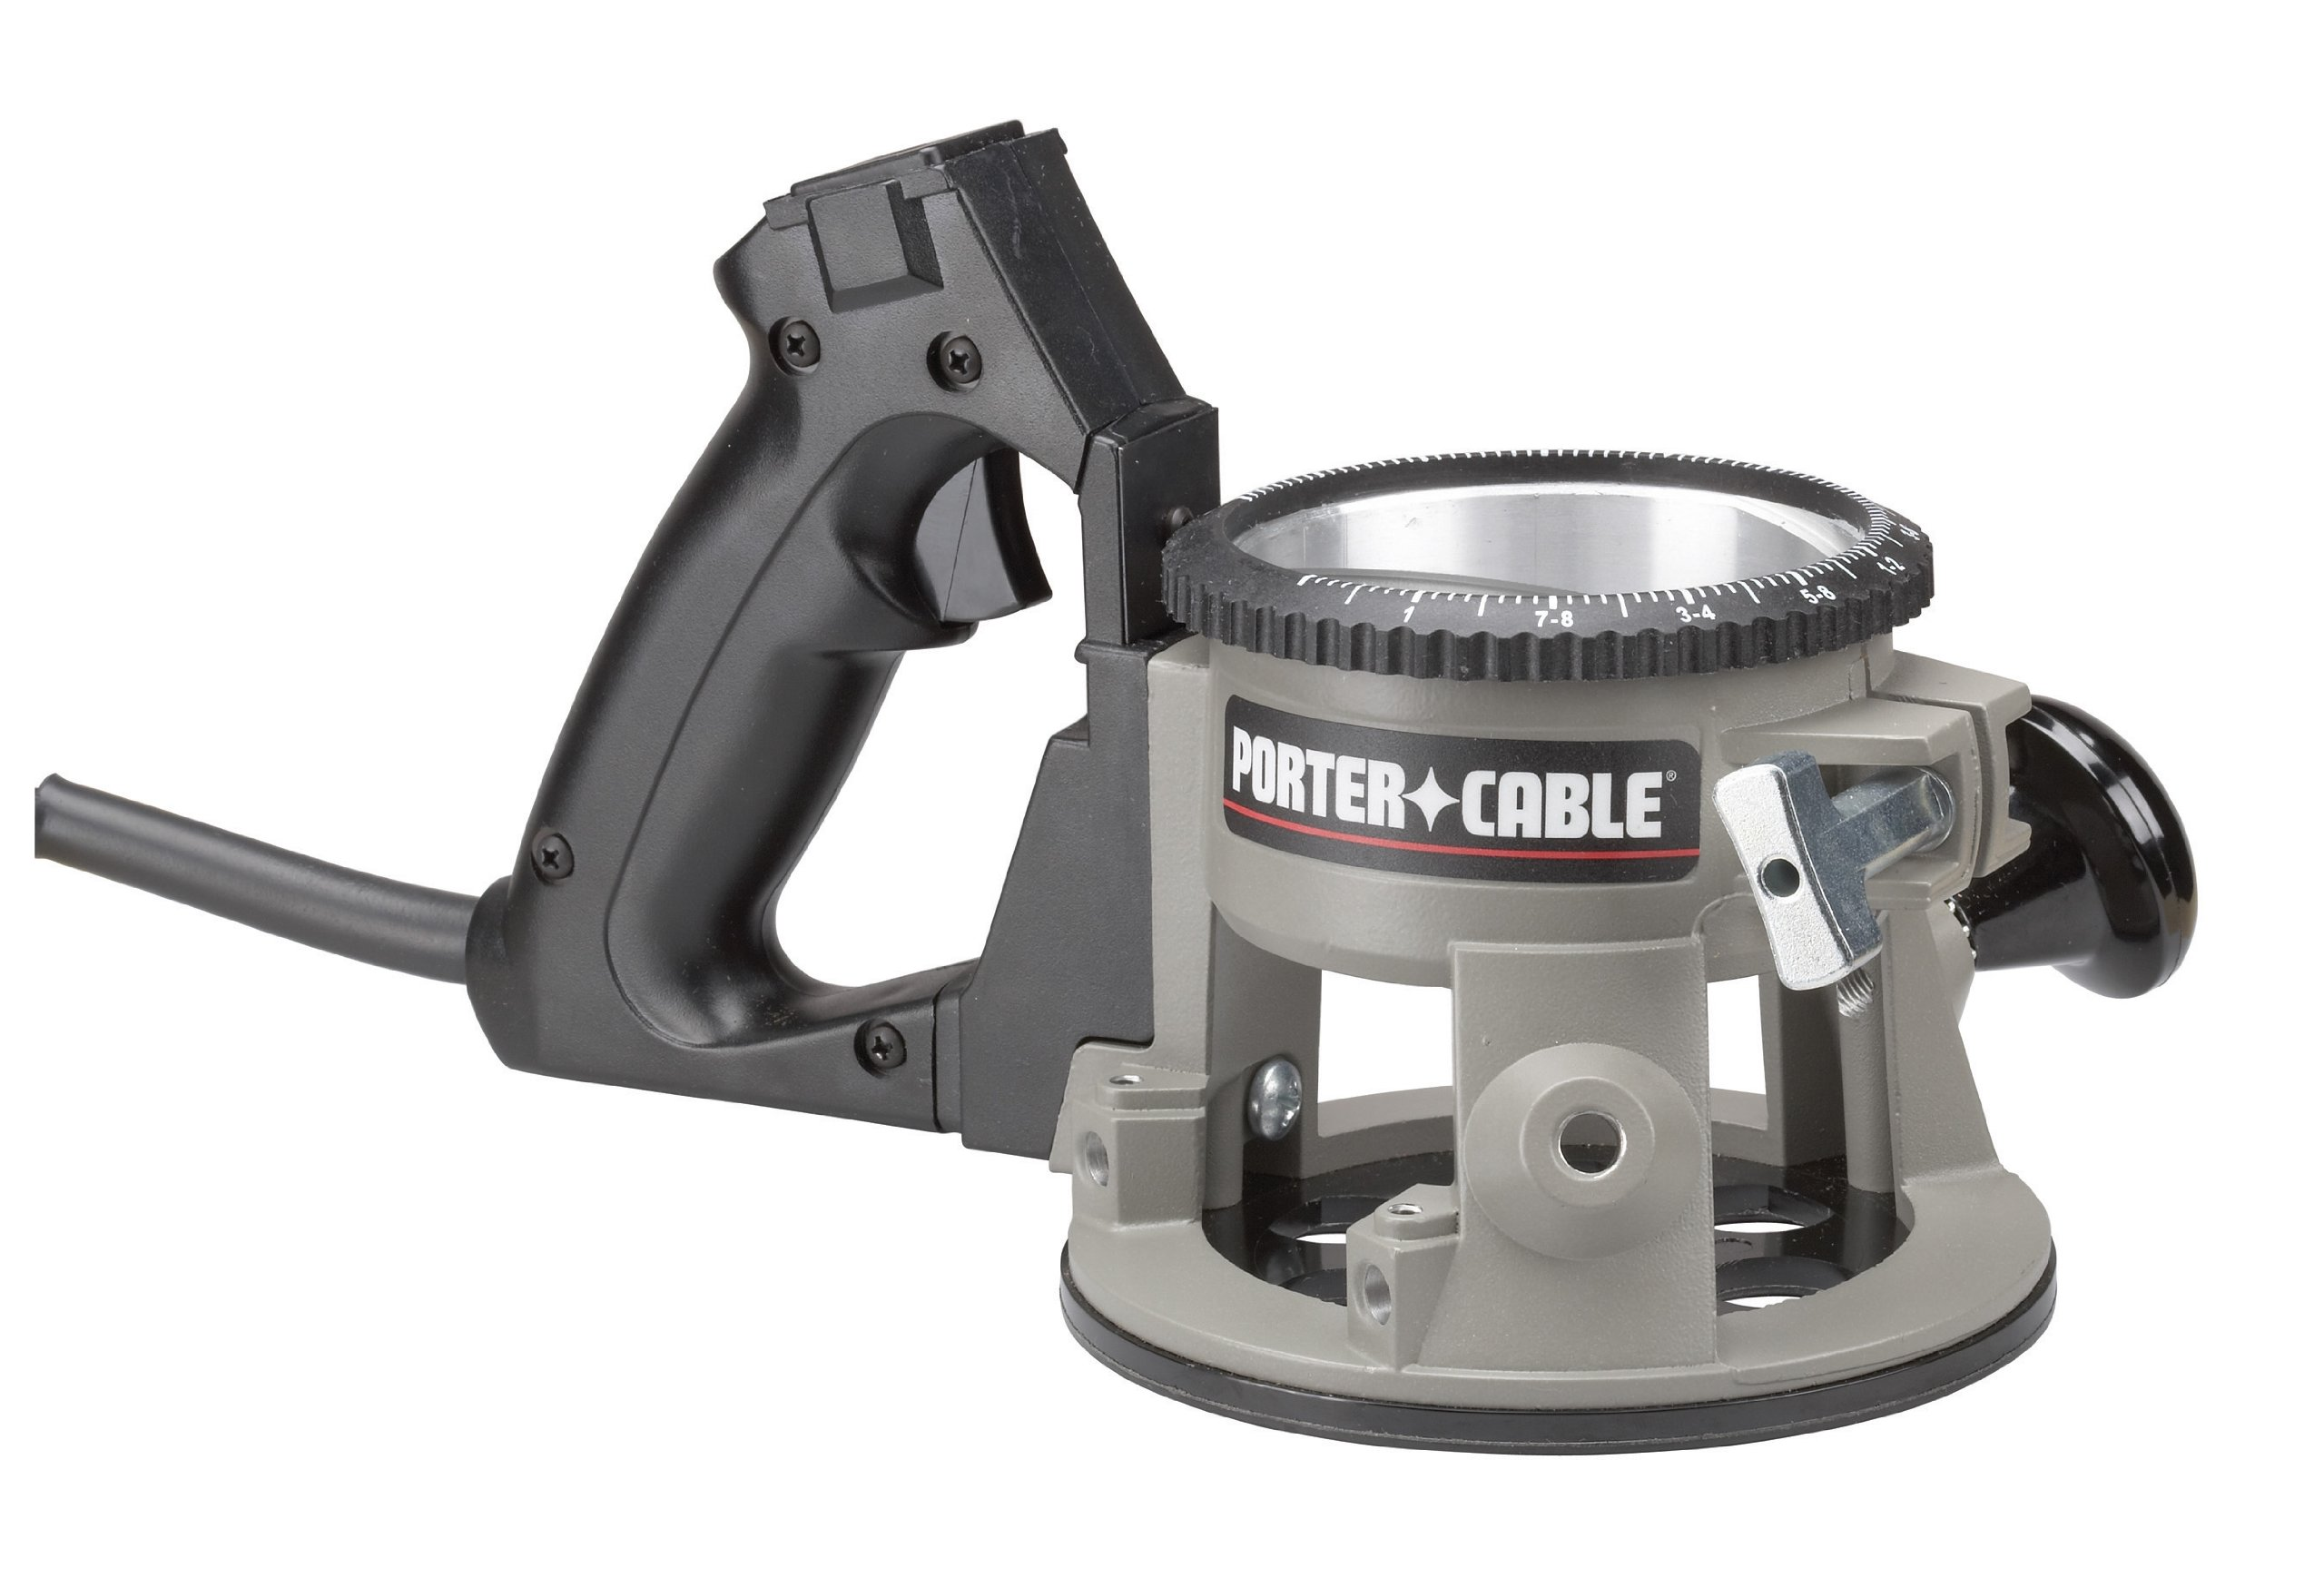 PORTER-CABLE Router Base, D-Handle (6911)